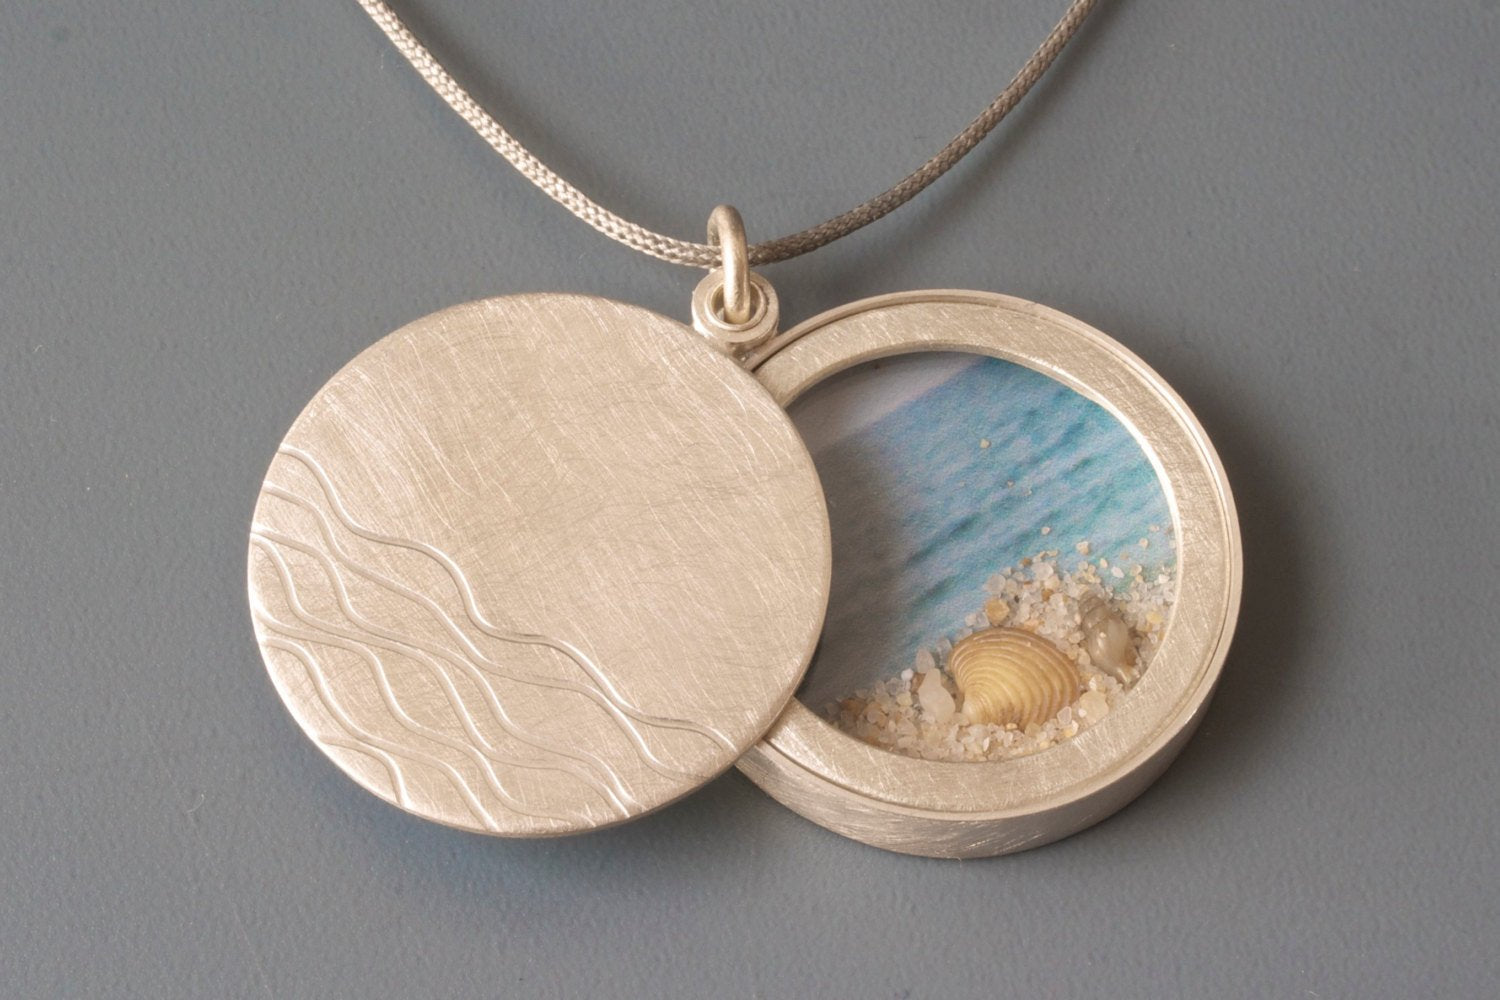 maritime floating locket filled sand and seashells handmade in sterling silver